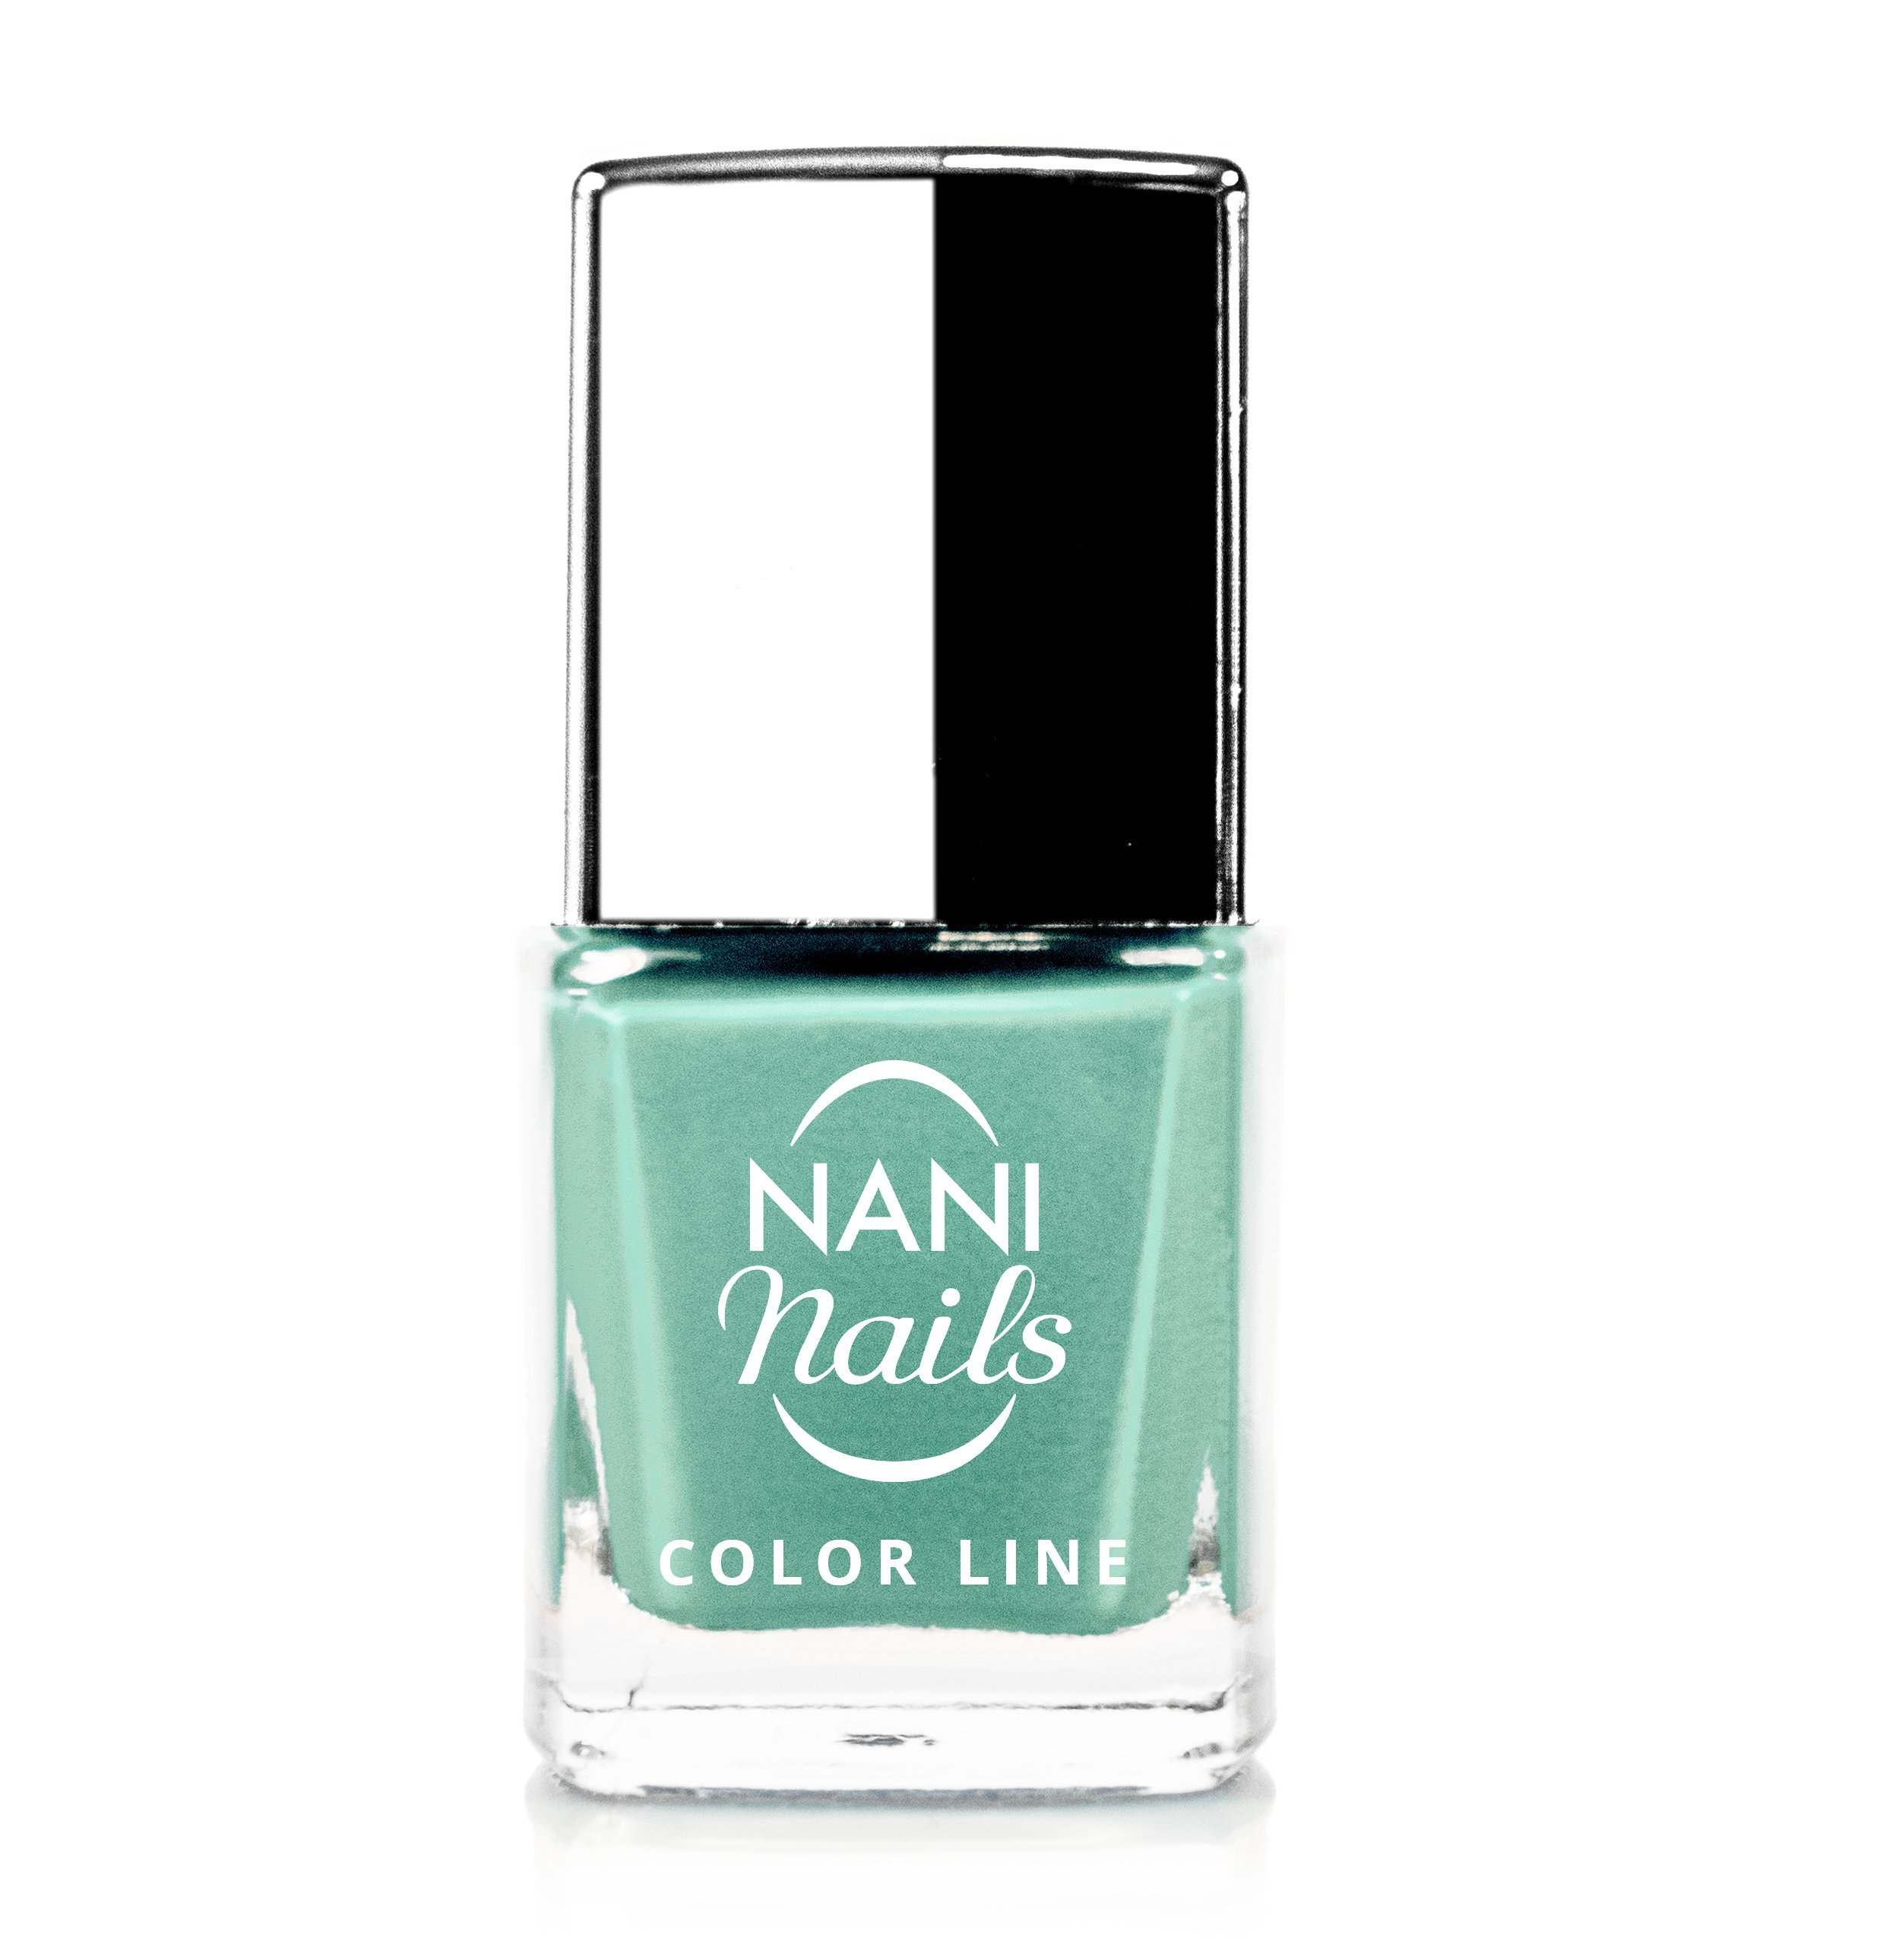 NANI lak Color Line 9 ml - 74